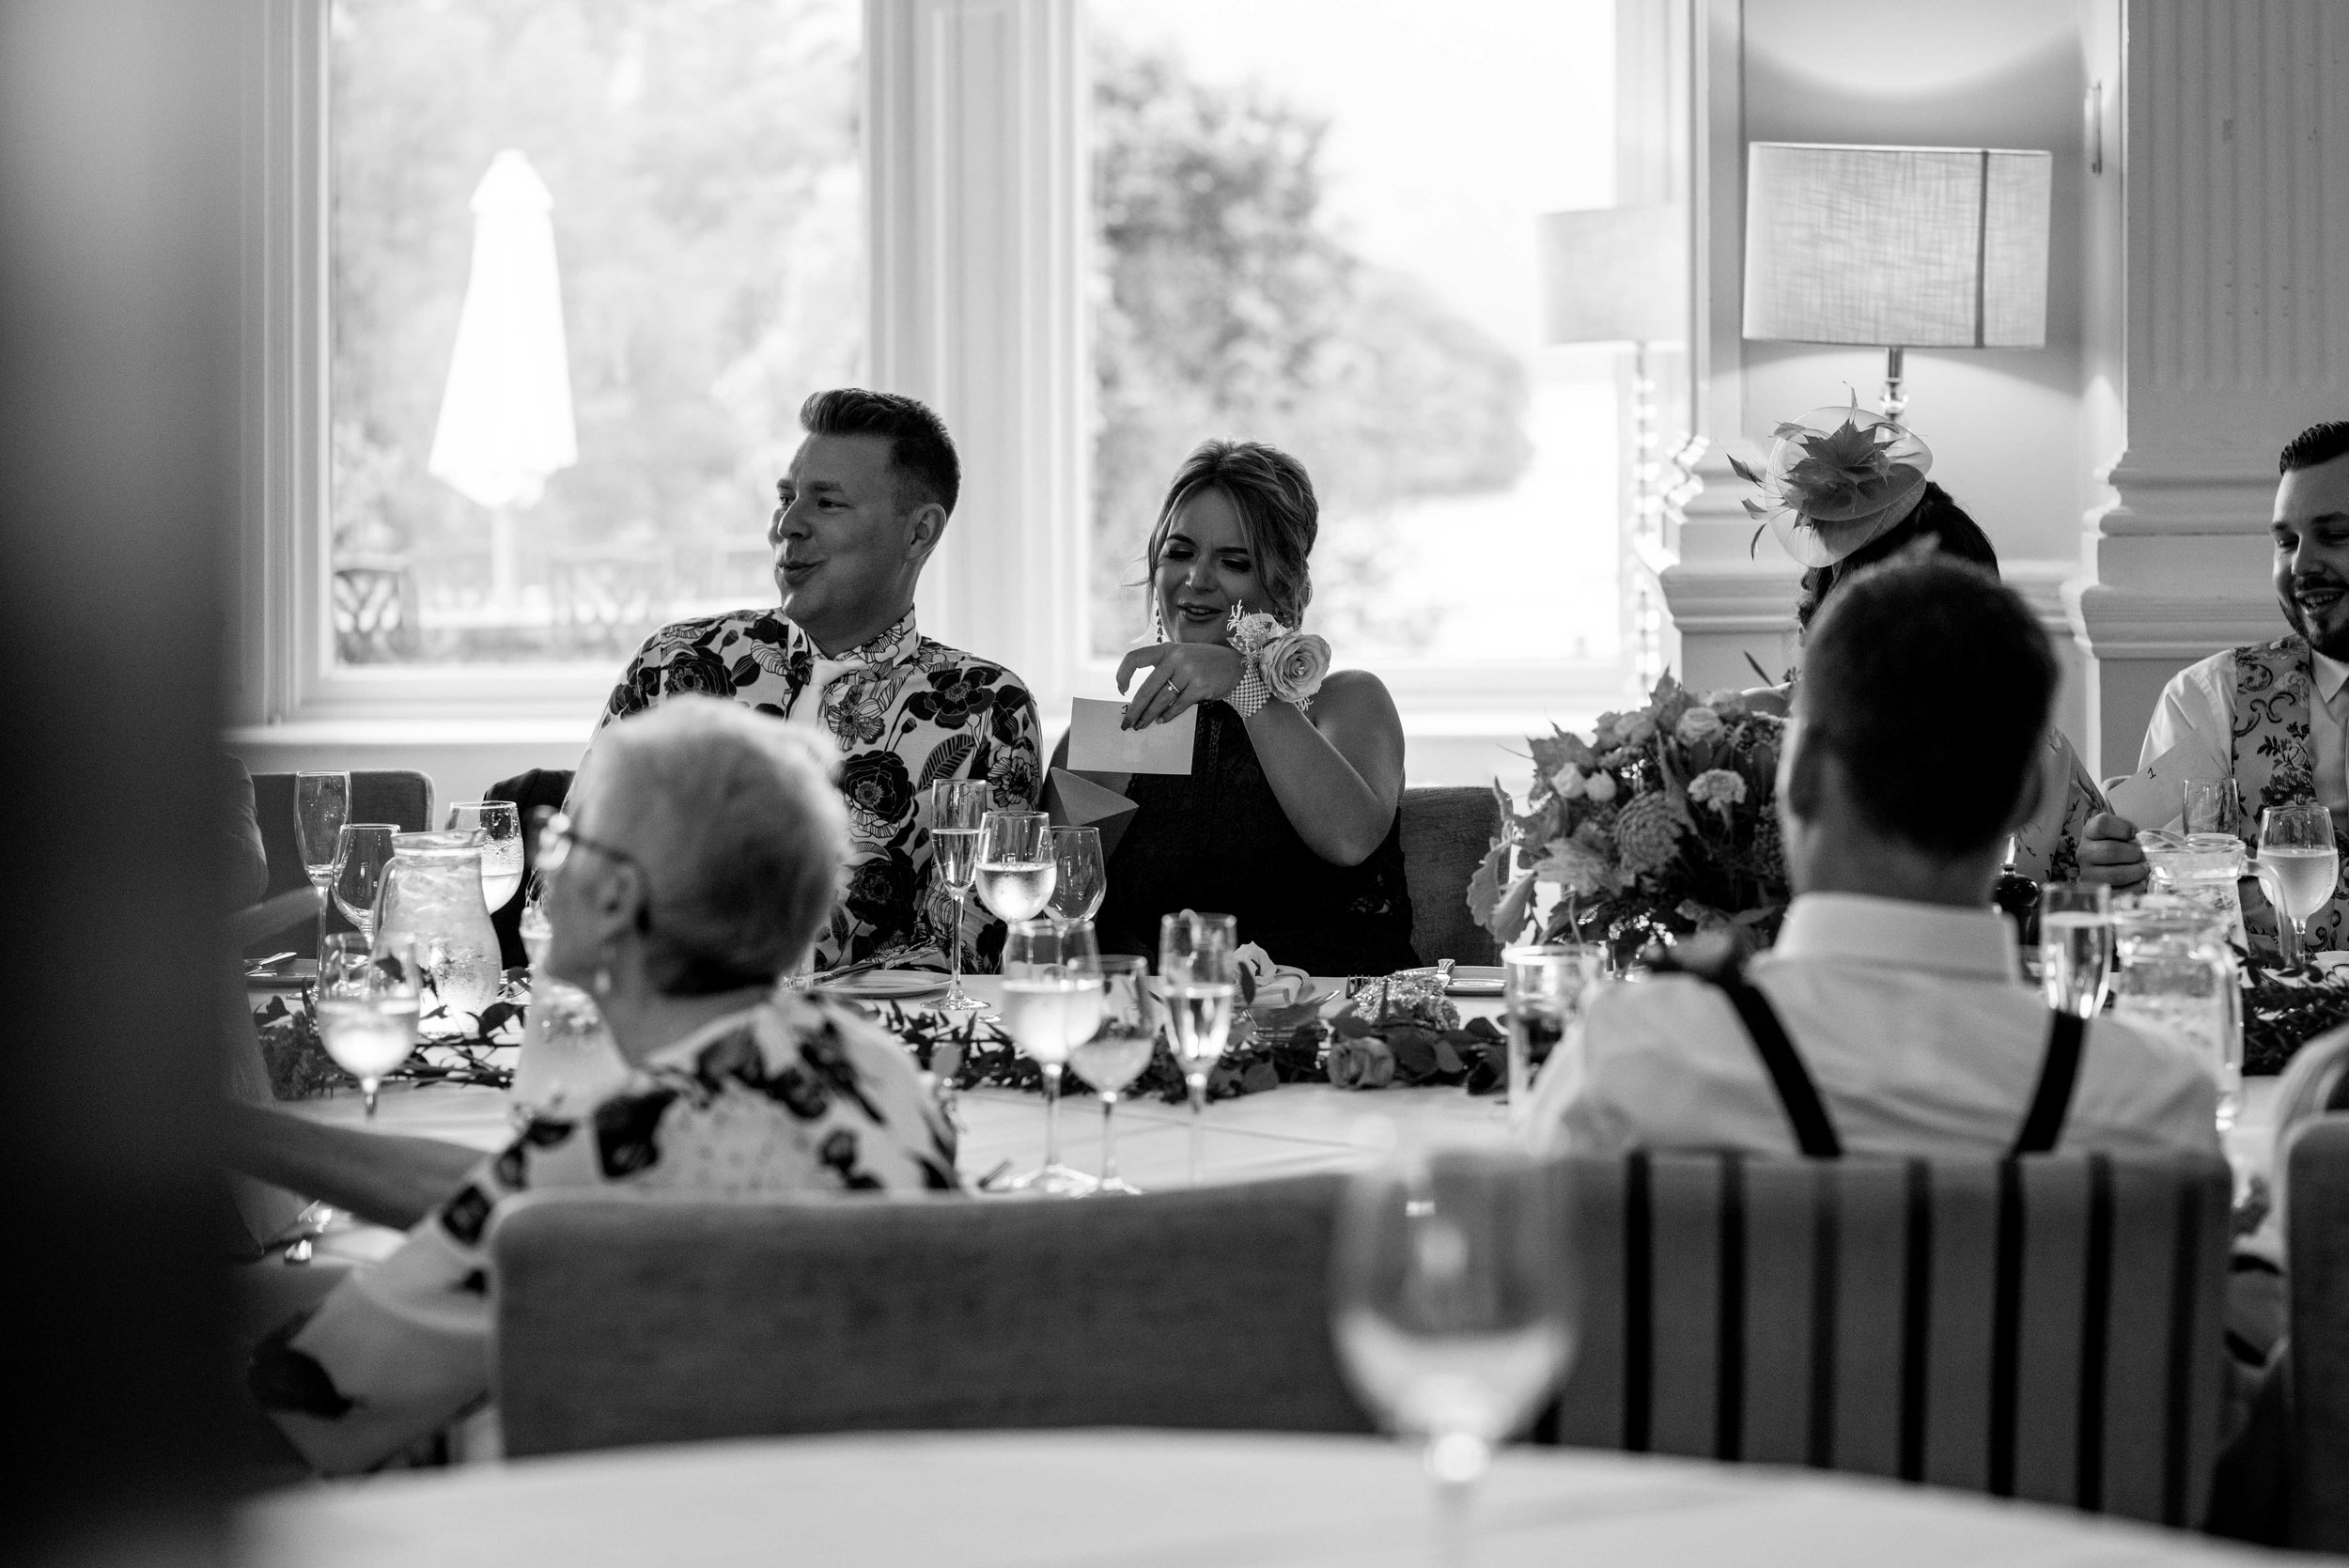 Two wedding guests with their backs facing the window laugh at a joke during the speeches